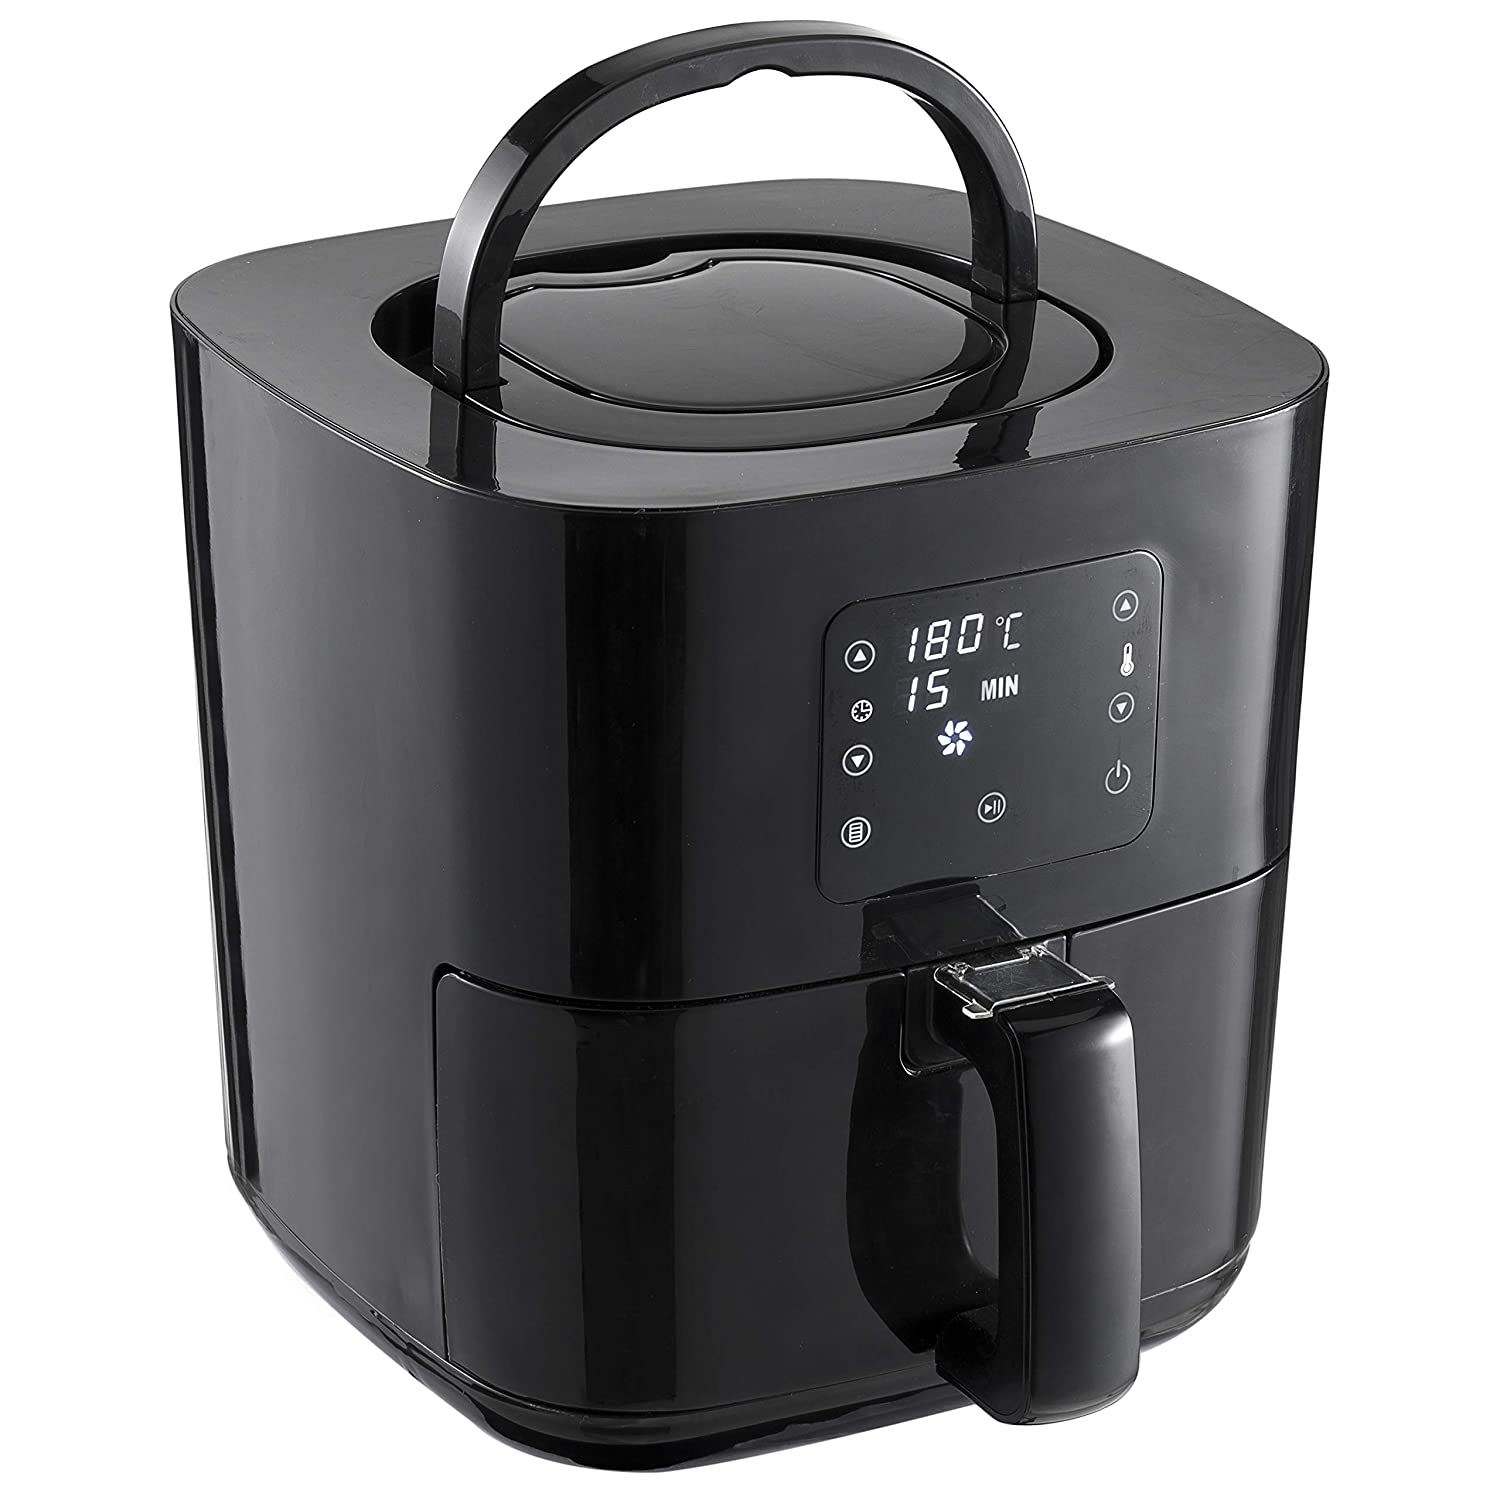 Nattork Air Fryer 3.7 QT Programmable Digital TouchScreen 6-in-1 Smart Techonlogy Electric Air Fryer, Timer and Temperature Control, with Recipes For Fast & Healthier Oil Free Cooking